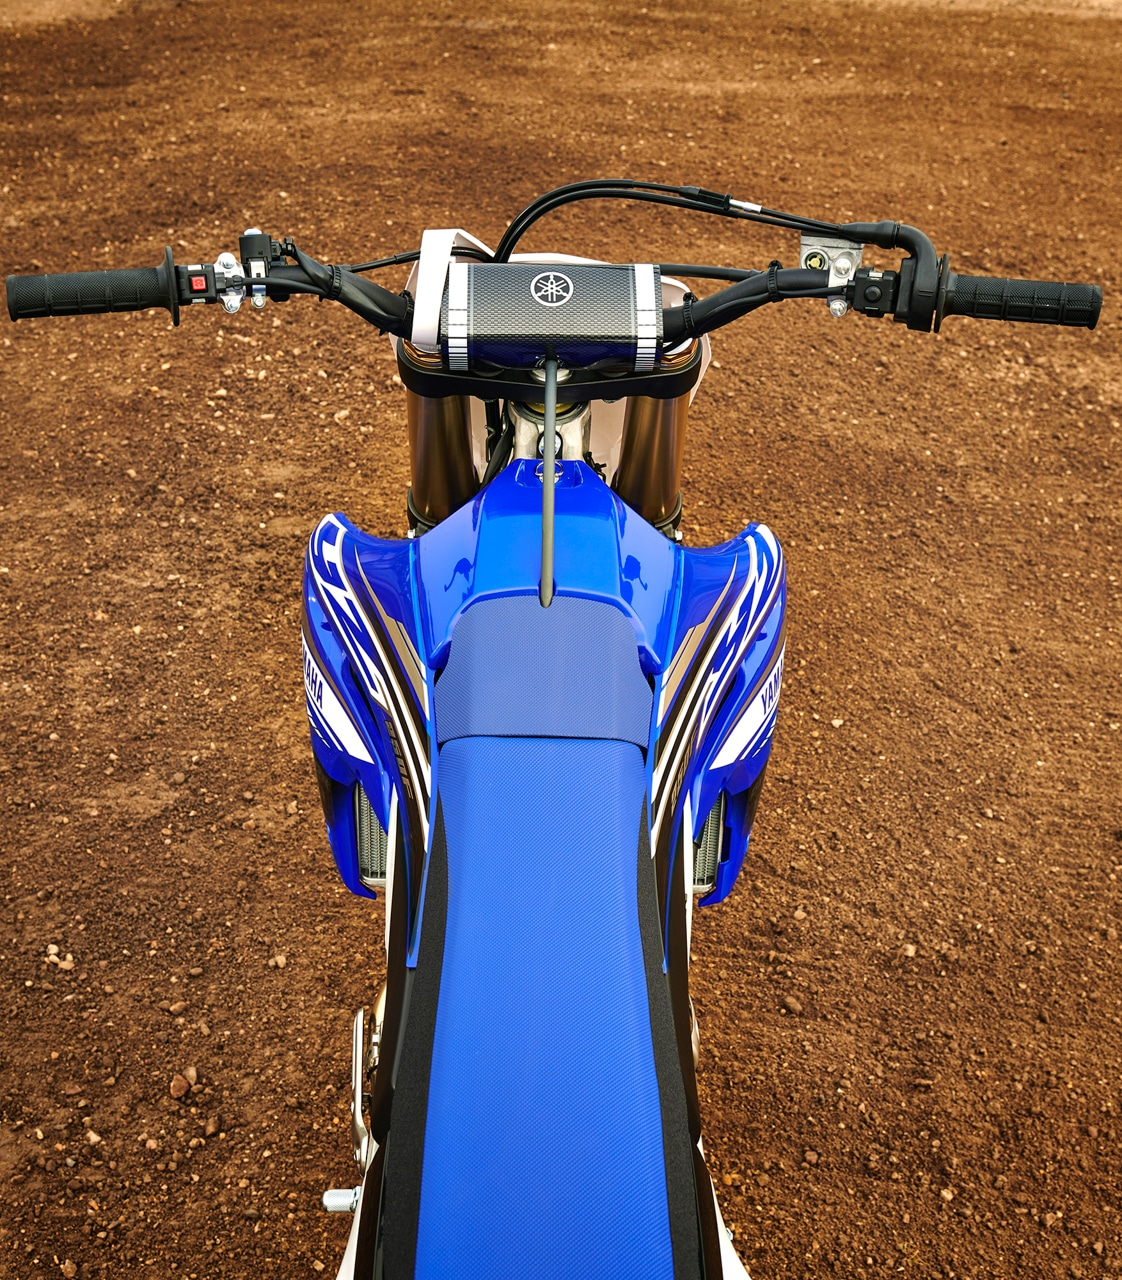 Pleasing Mxa Race Test The Real Test Of The 2019 Yamaha Yz250F Caraccident5 Cool Chair Designs And Ideas Caraccident5Info